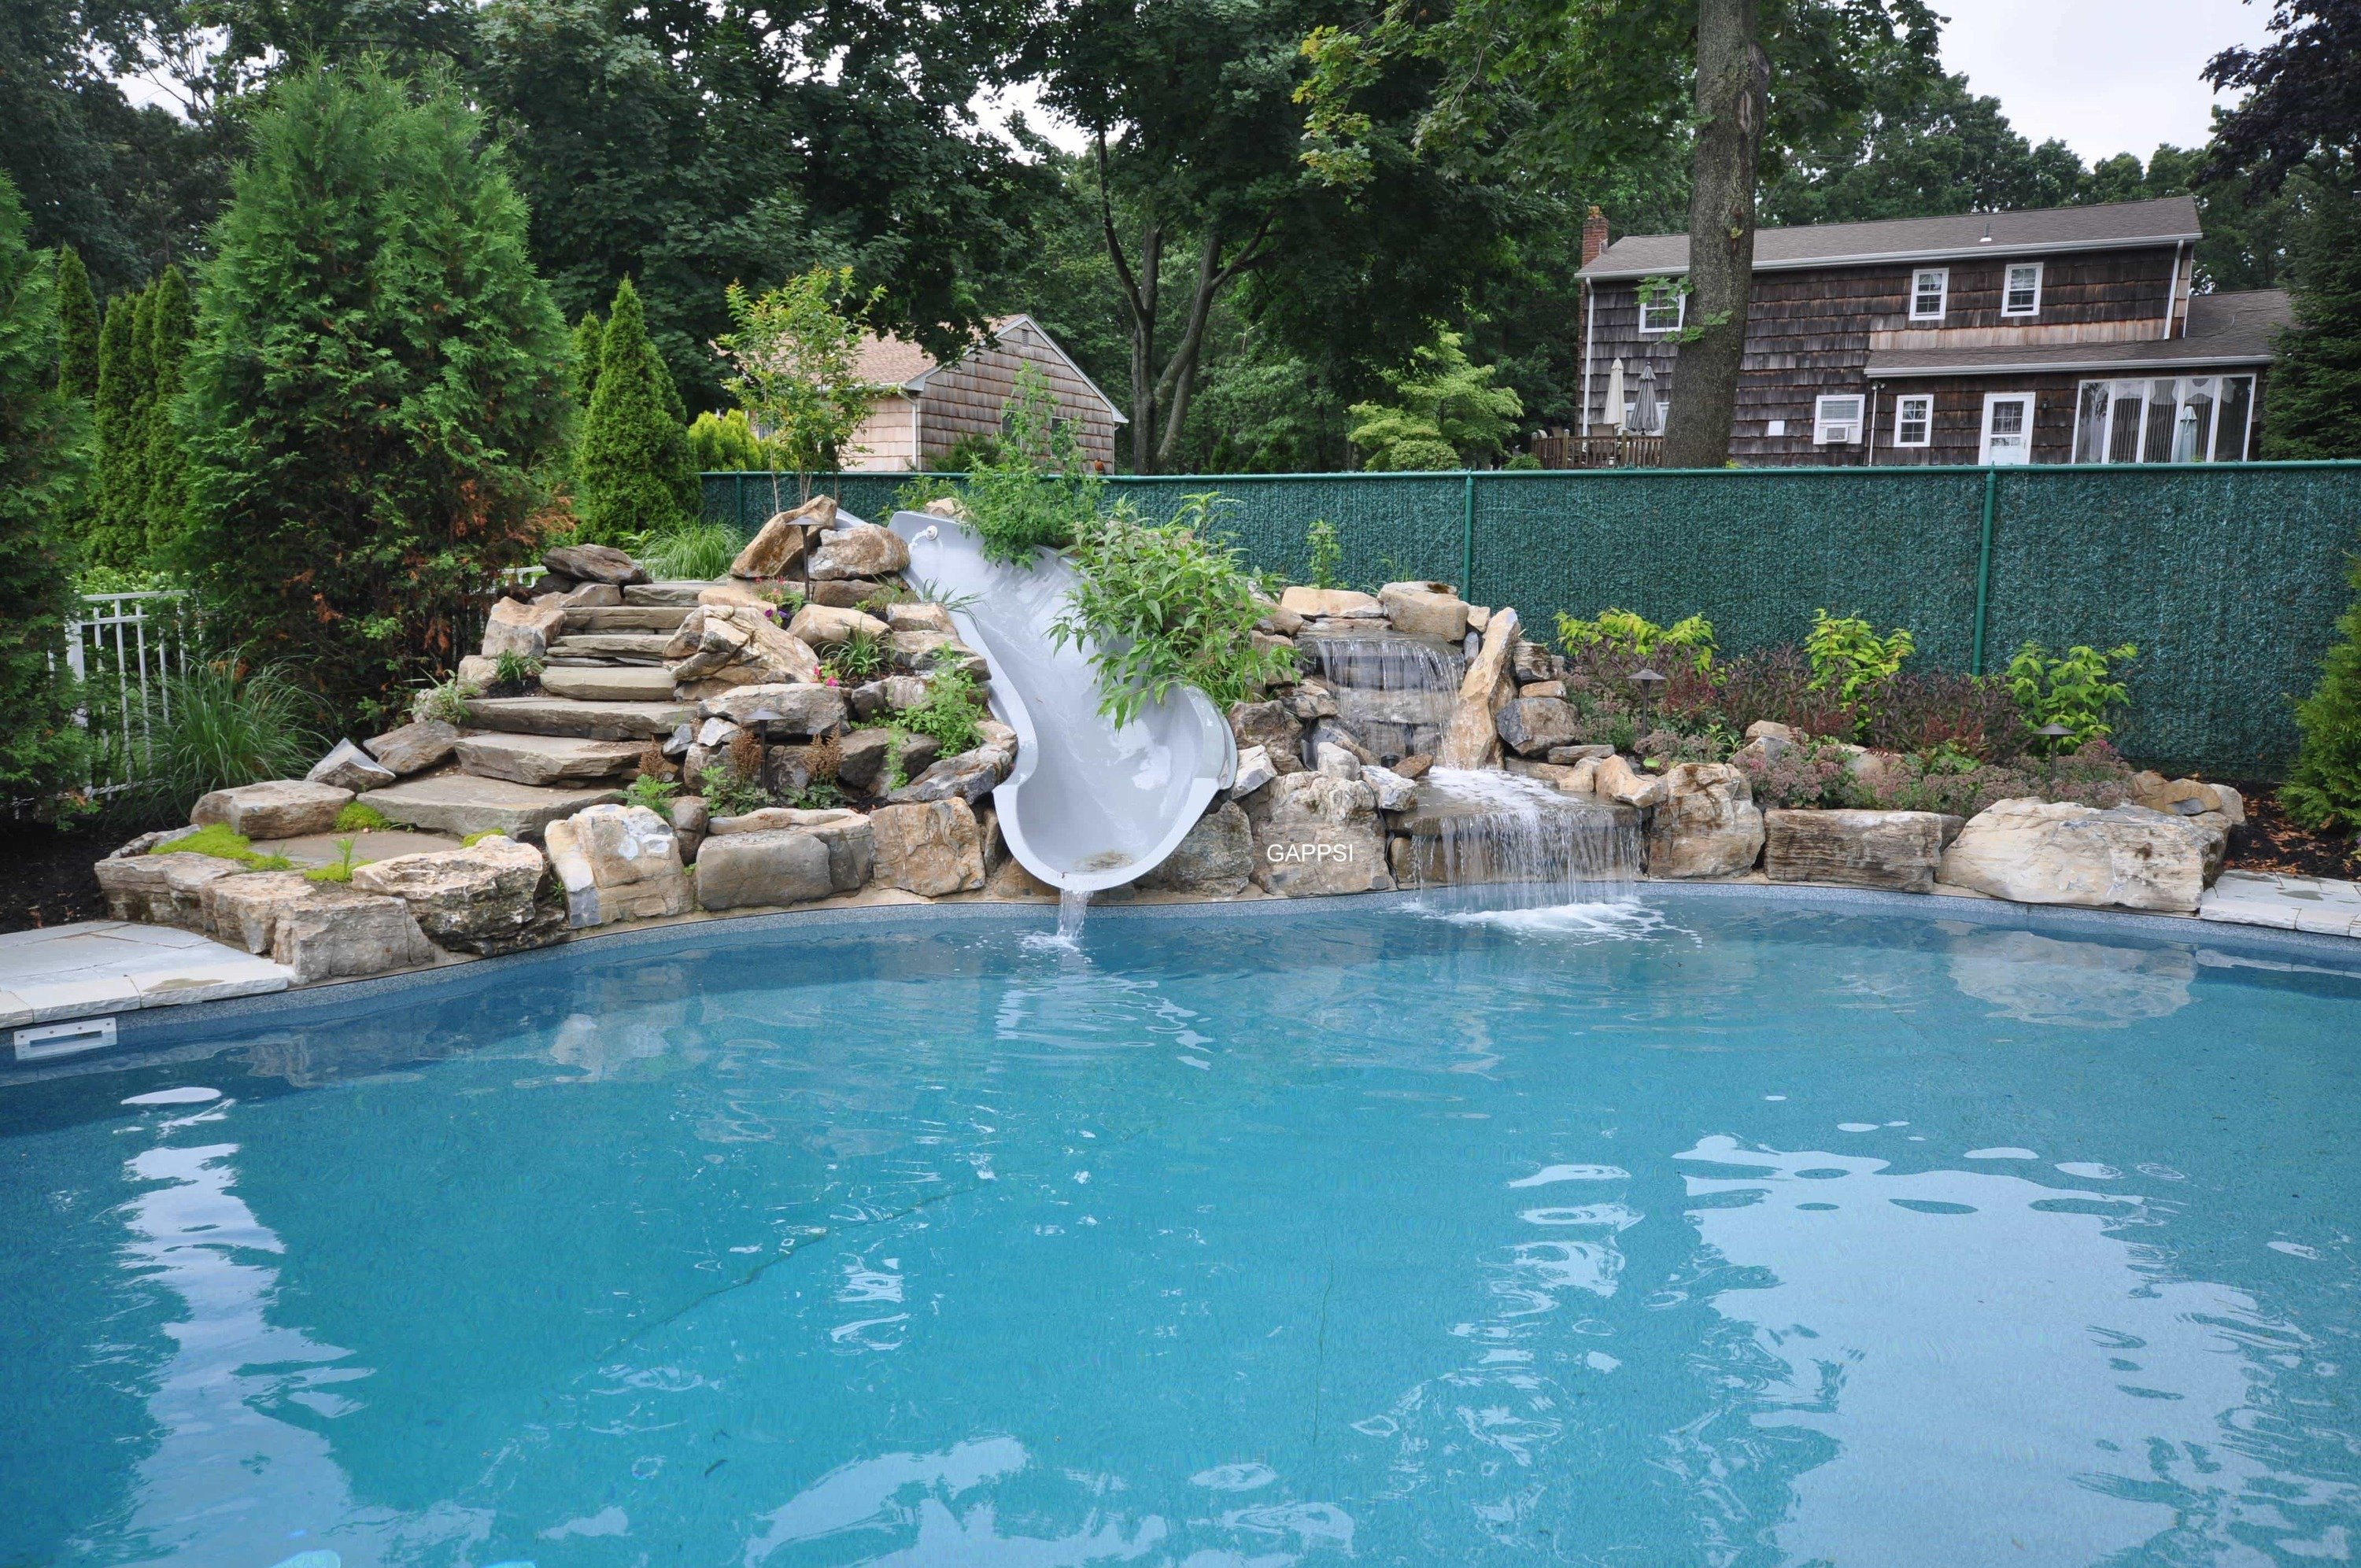 https://gappsi.com/wp-content/uploads/2014/02/Swimming-pool-Backyard-Waterfalls-Long-Island-contractor-Gappsi.jpg